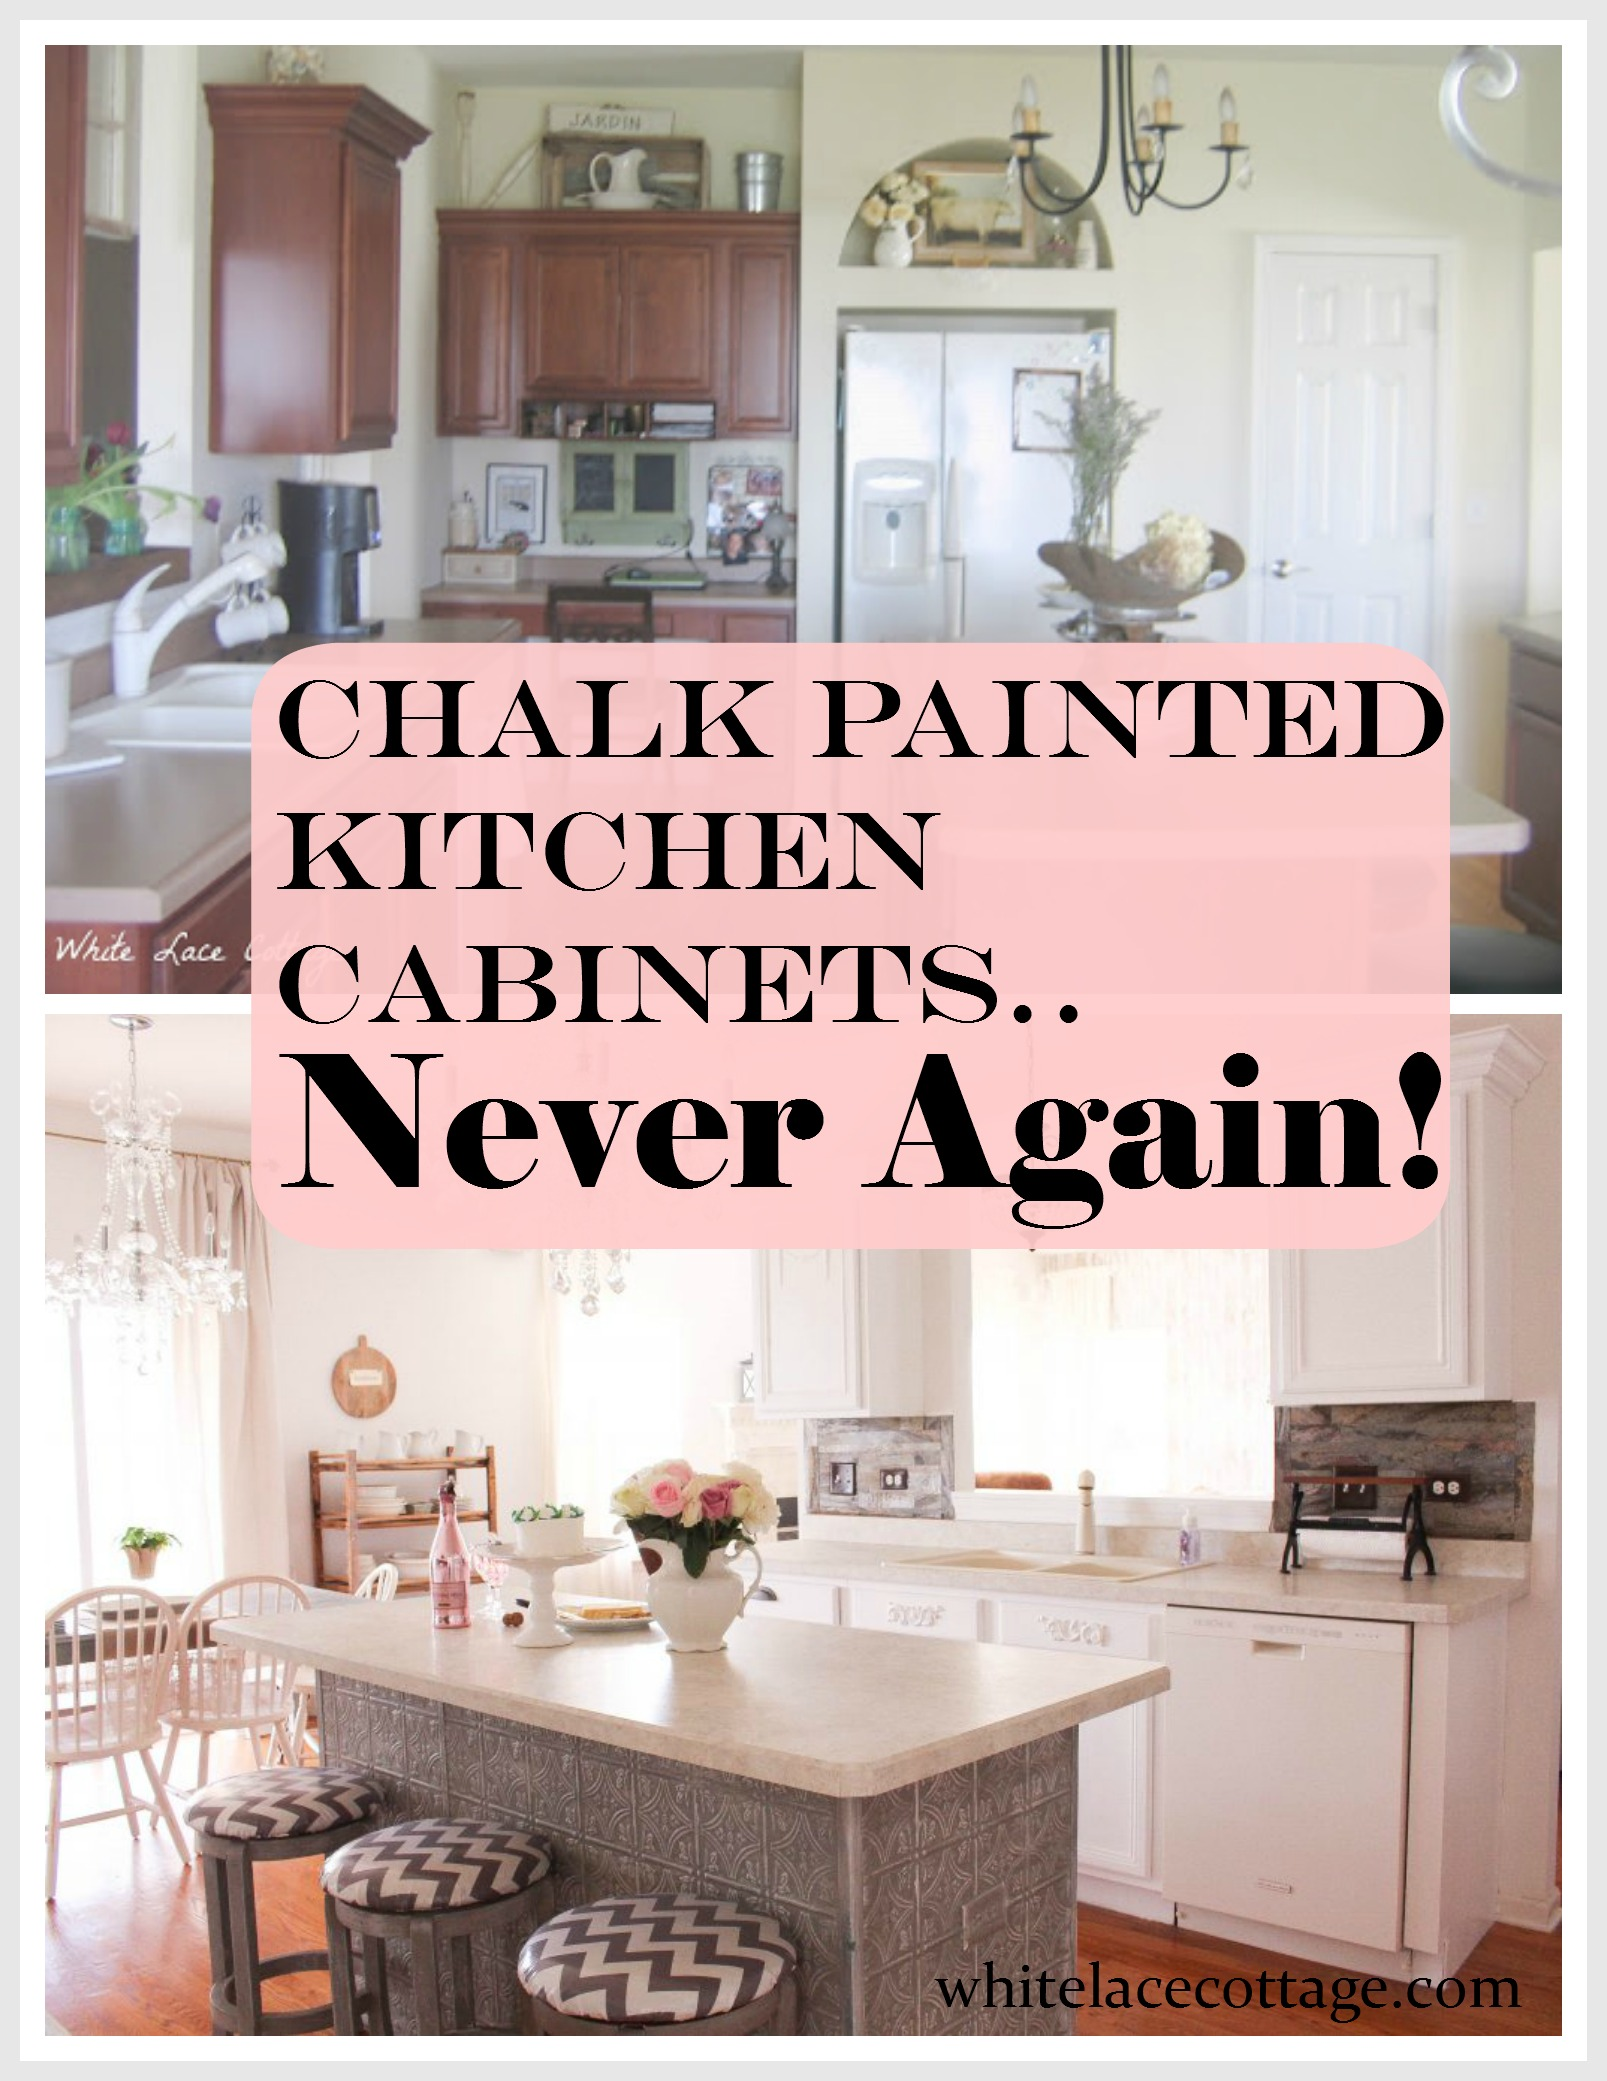 Chalk painted kitchen cabinets never again white lace for Kitchen kitchen cabinets